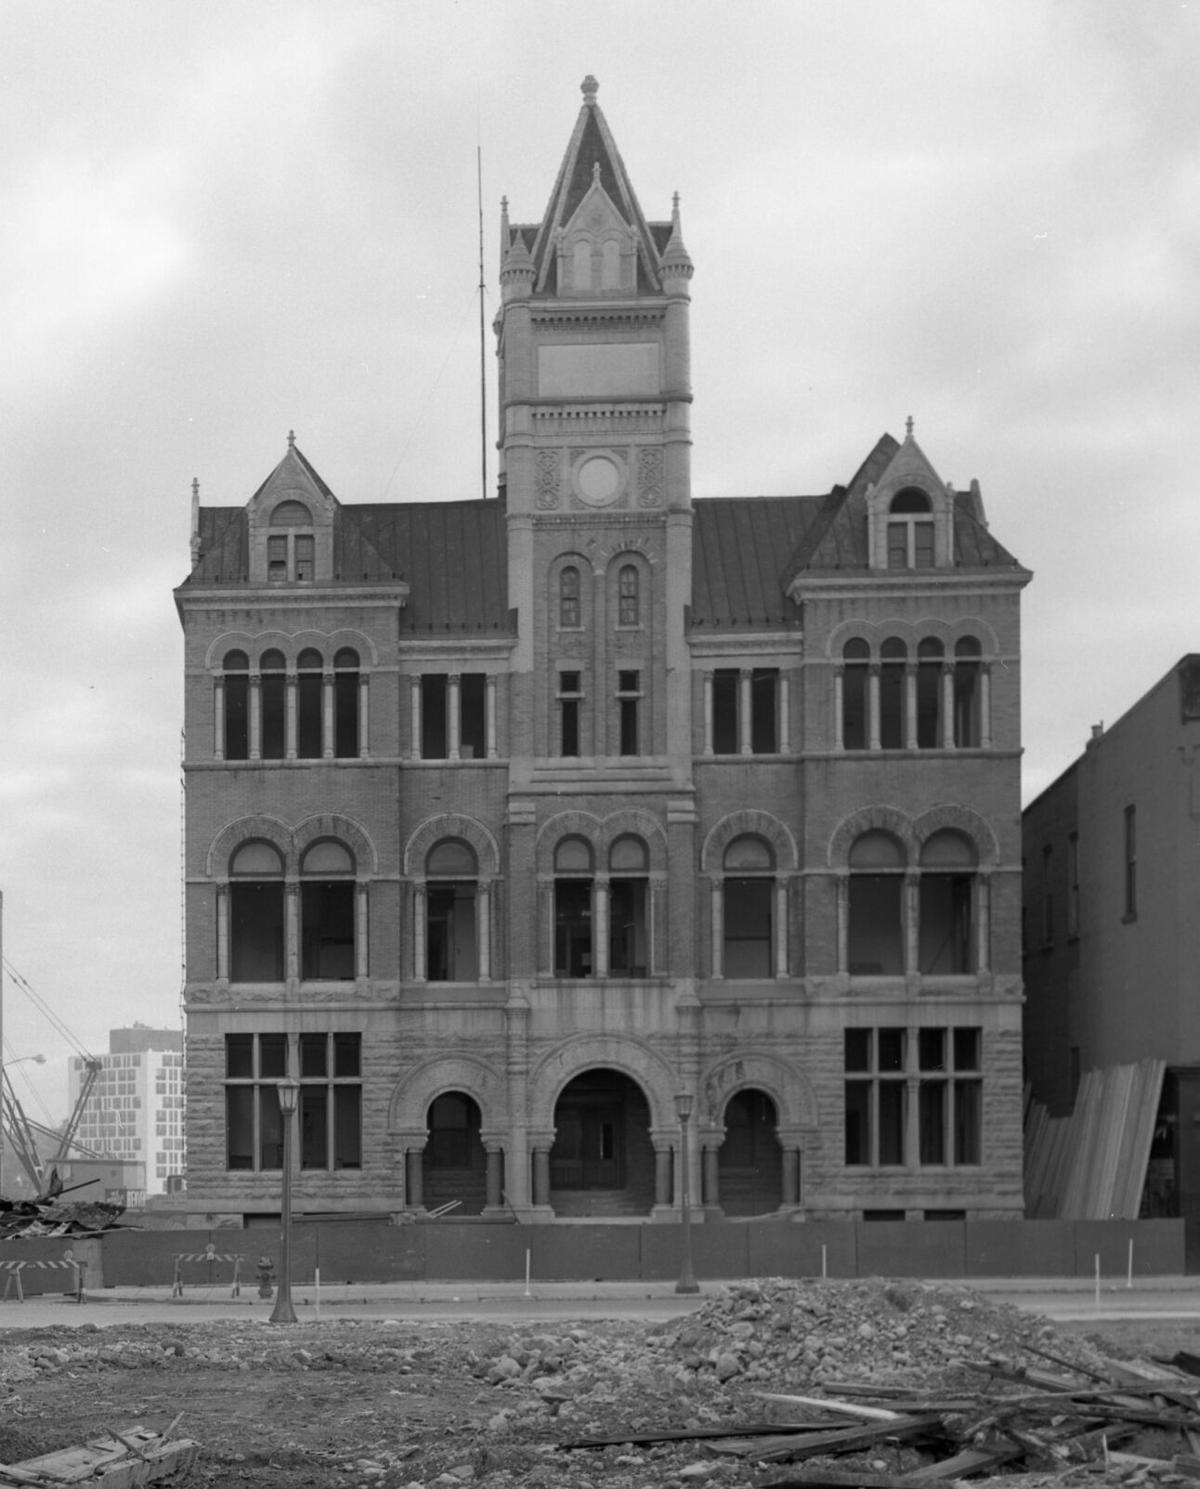 Old Watertown City Hall bites the dust